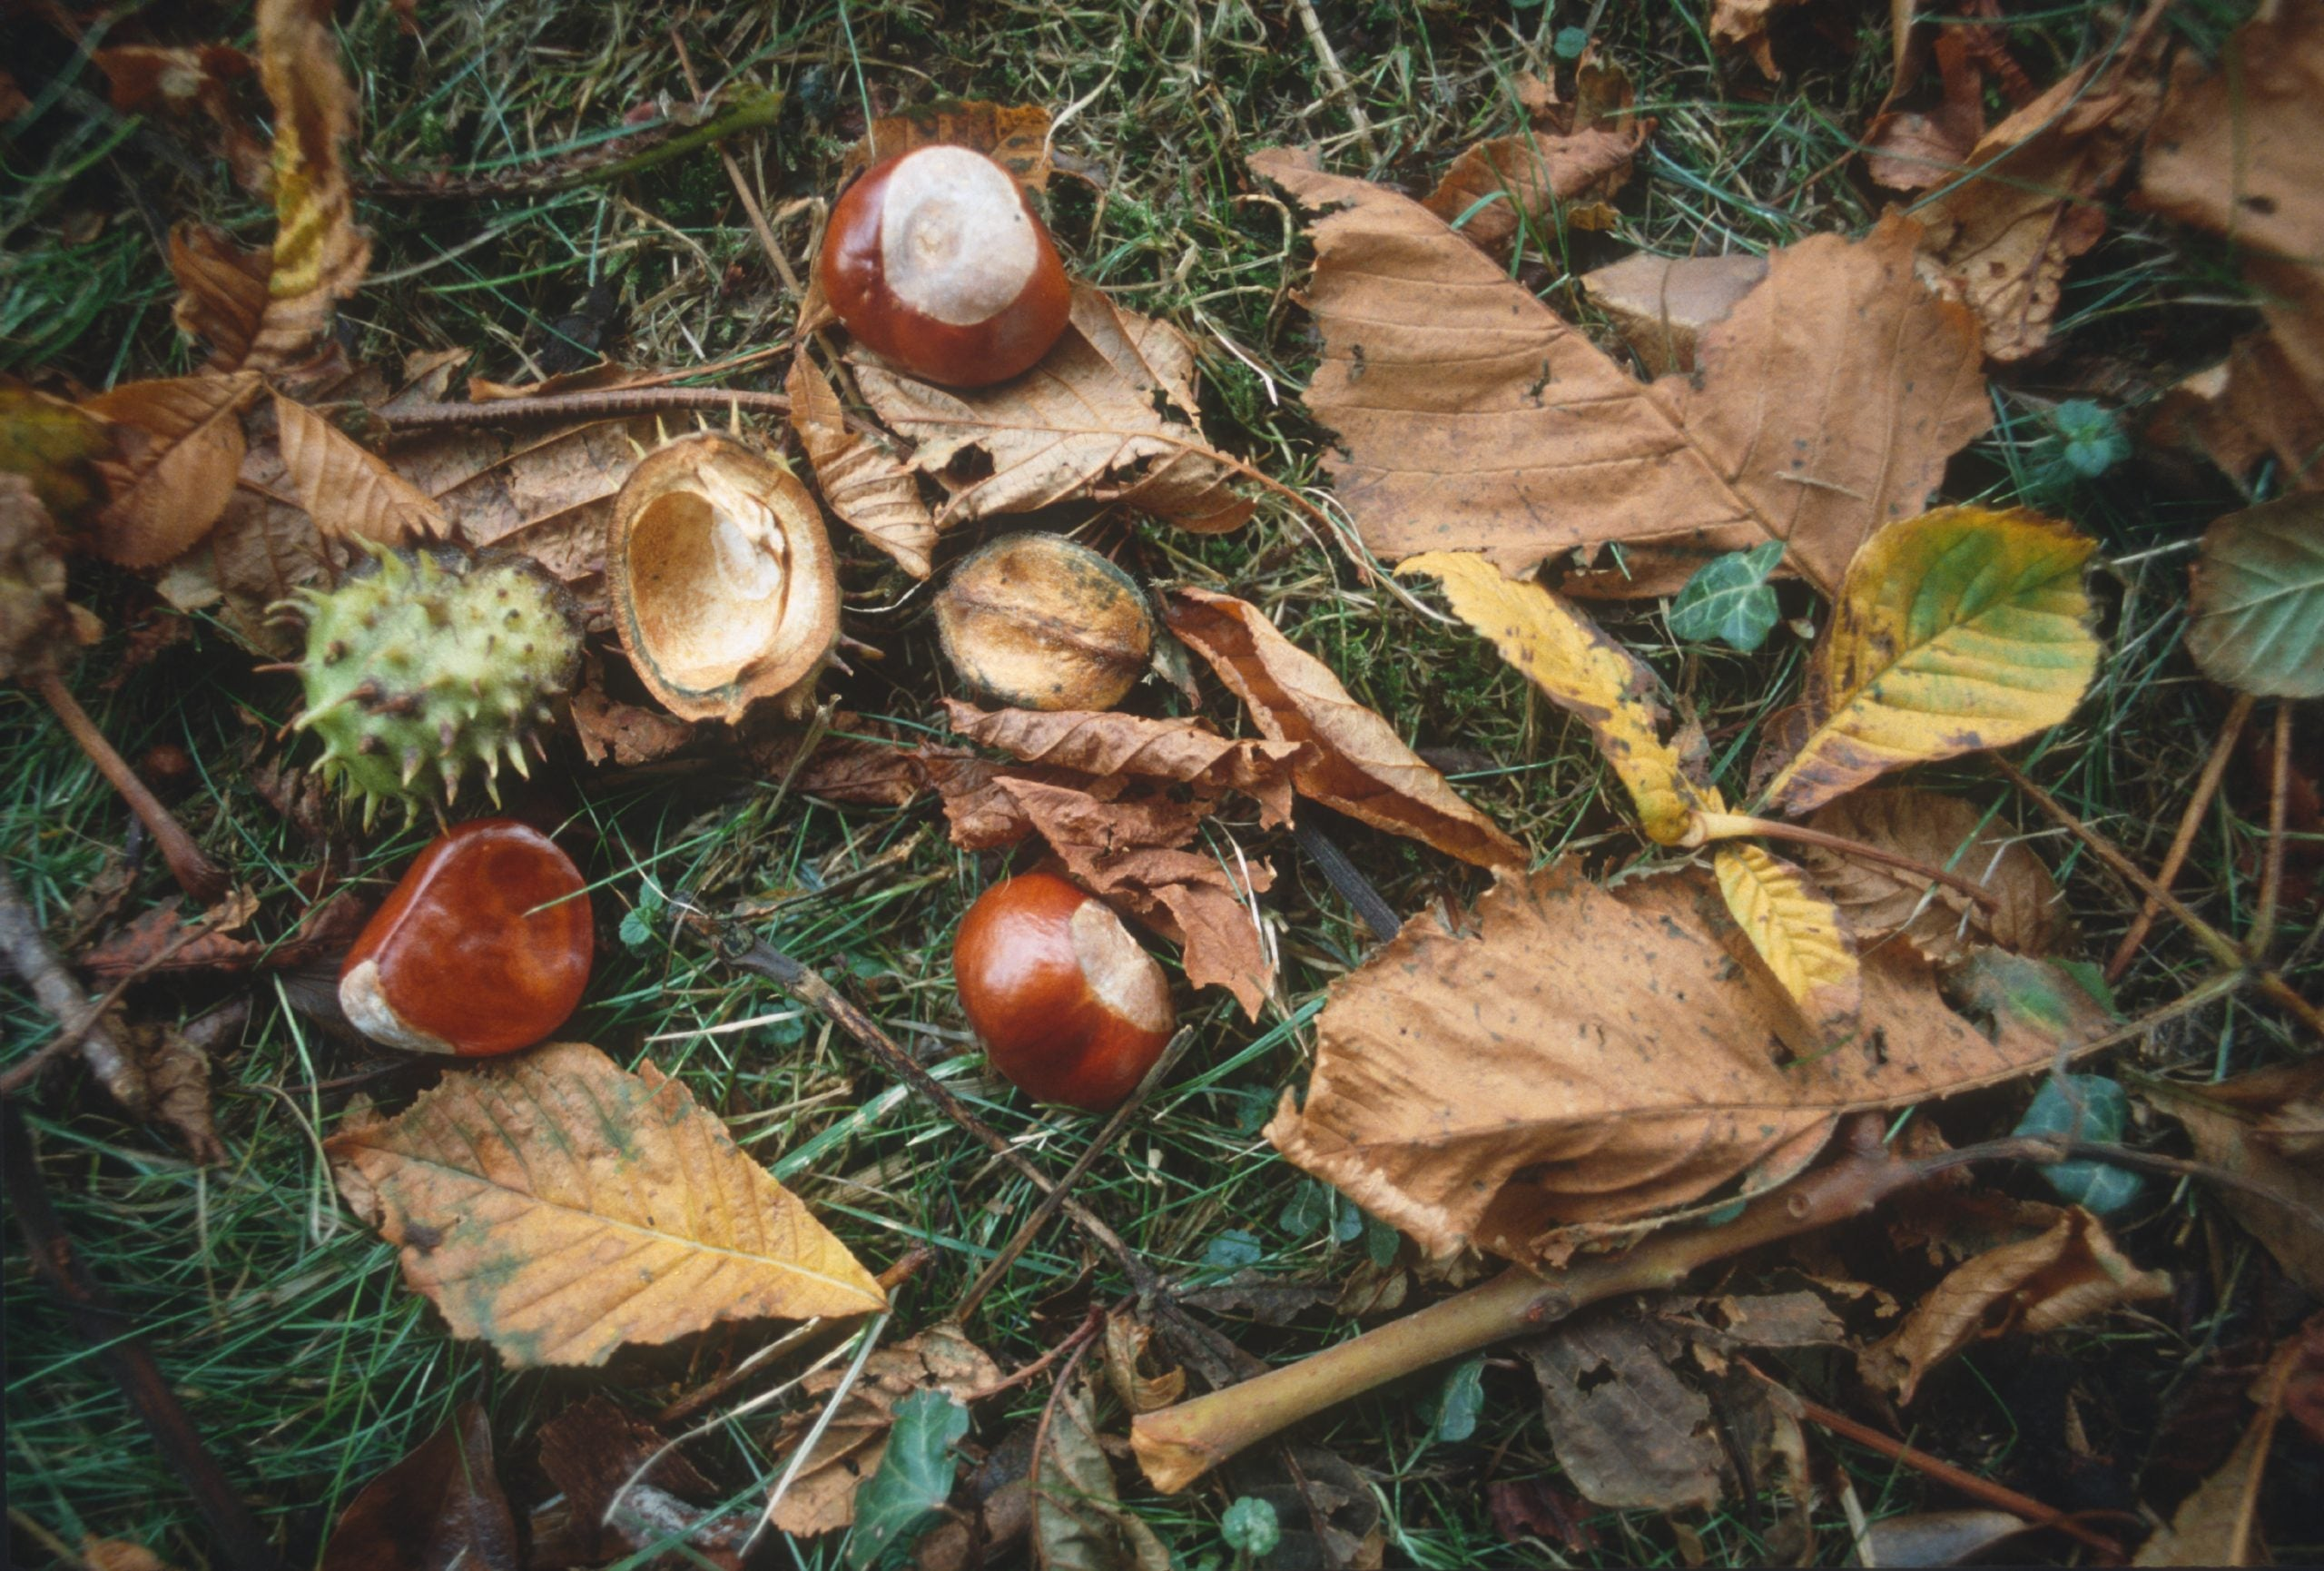 The NS Poem: Horse chestnut